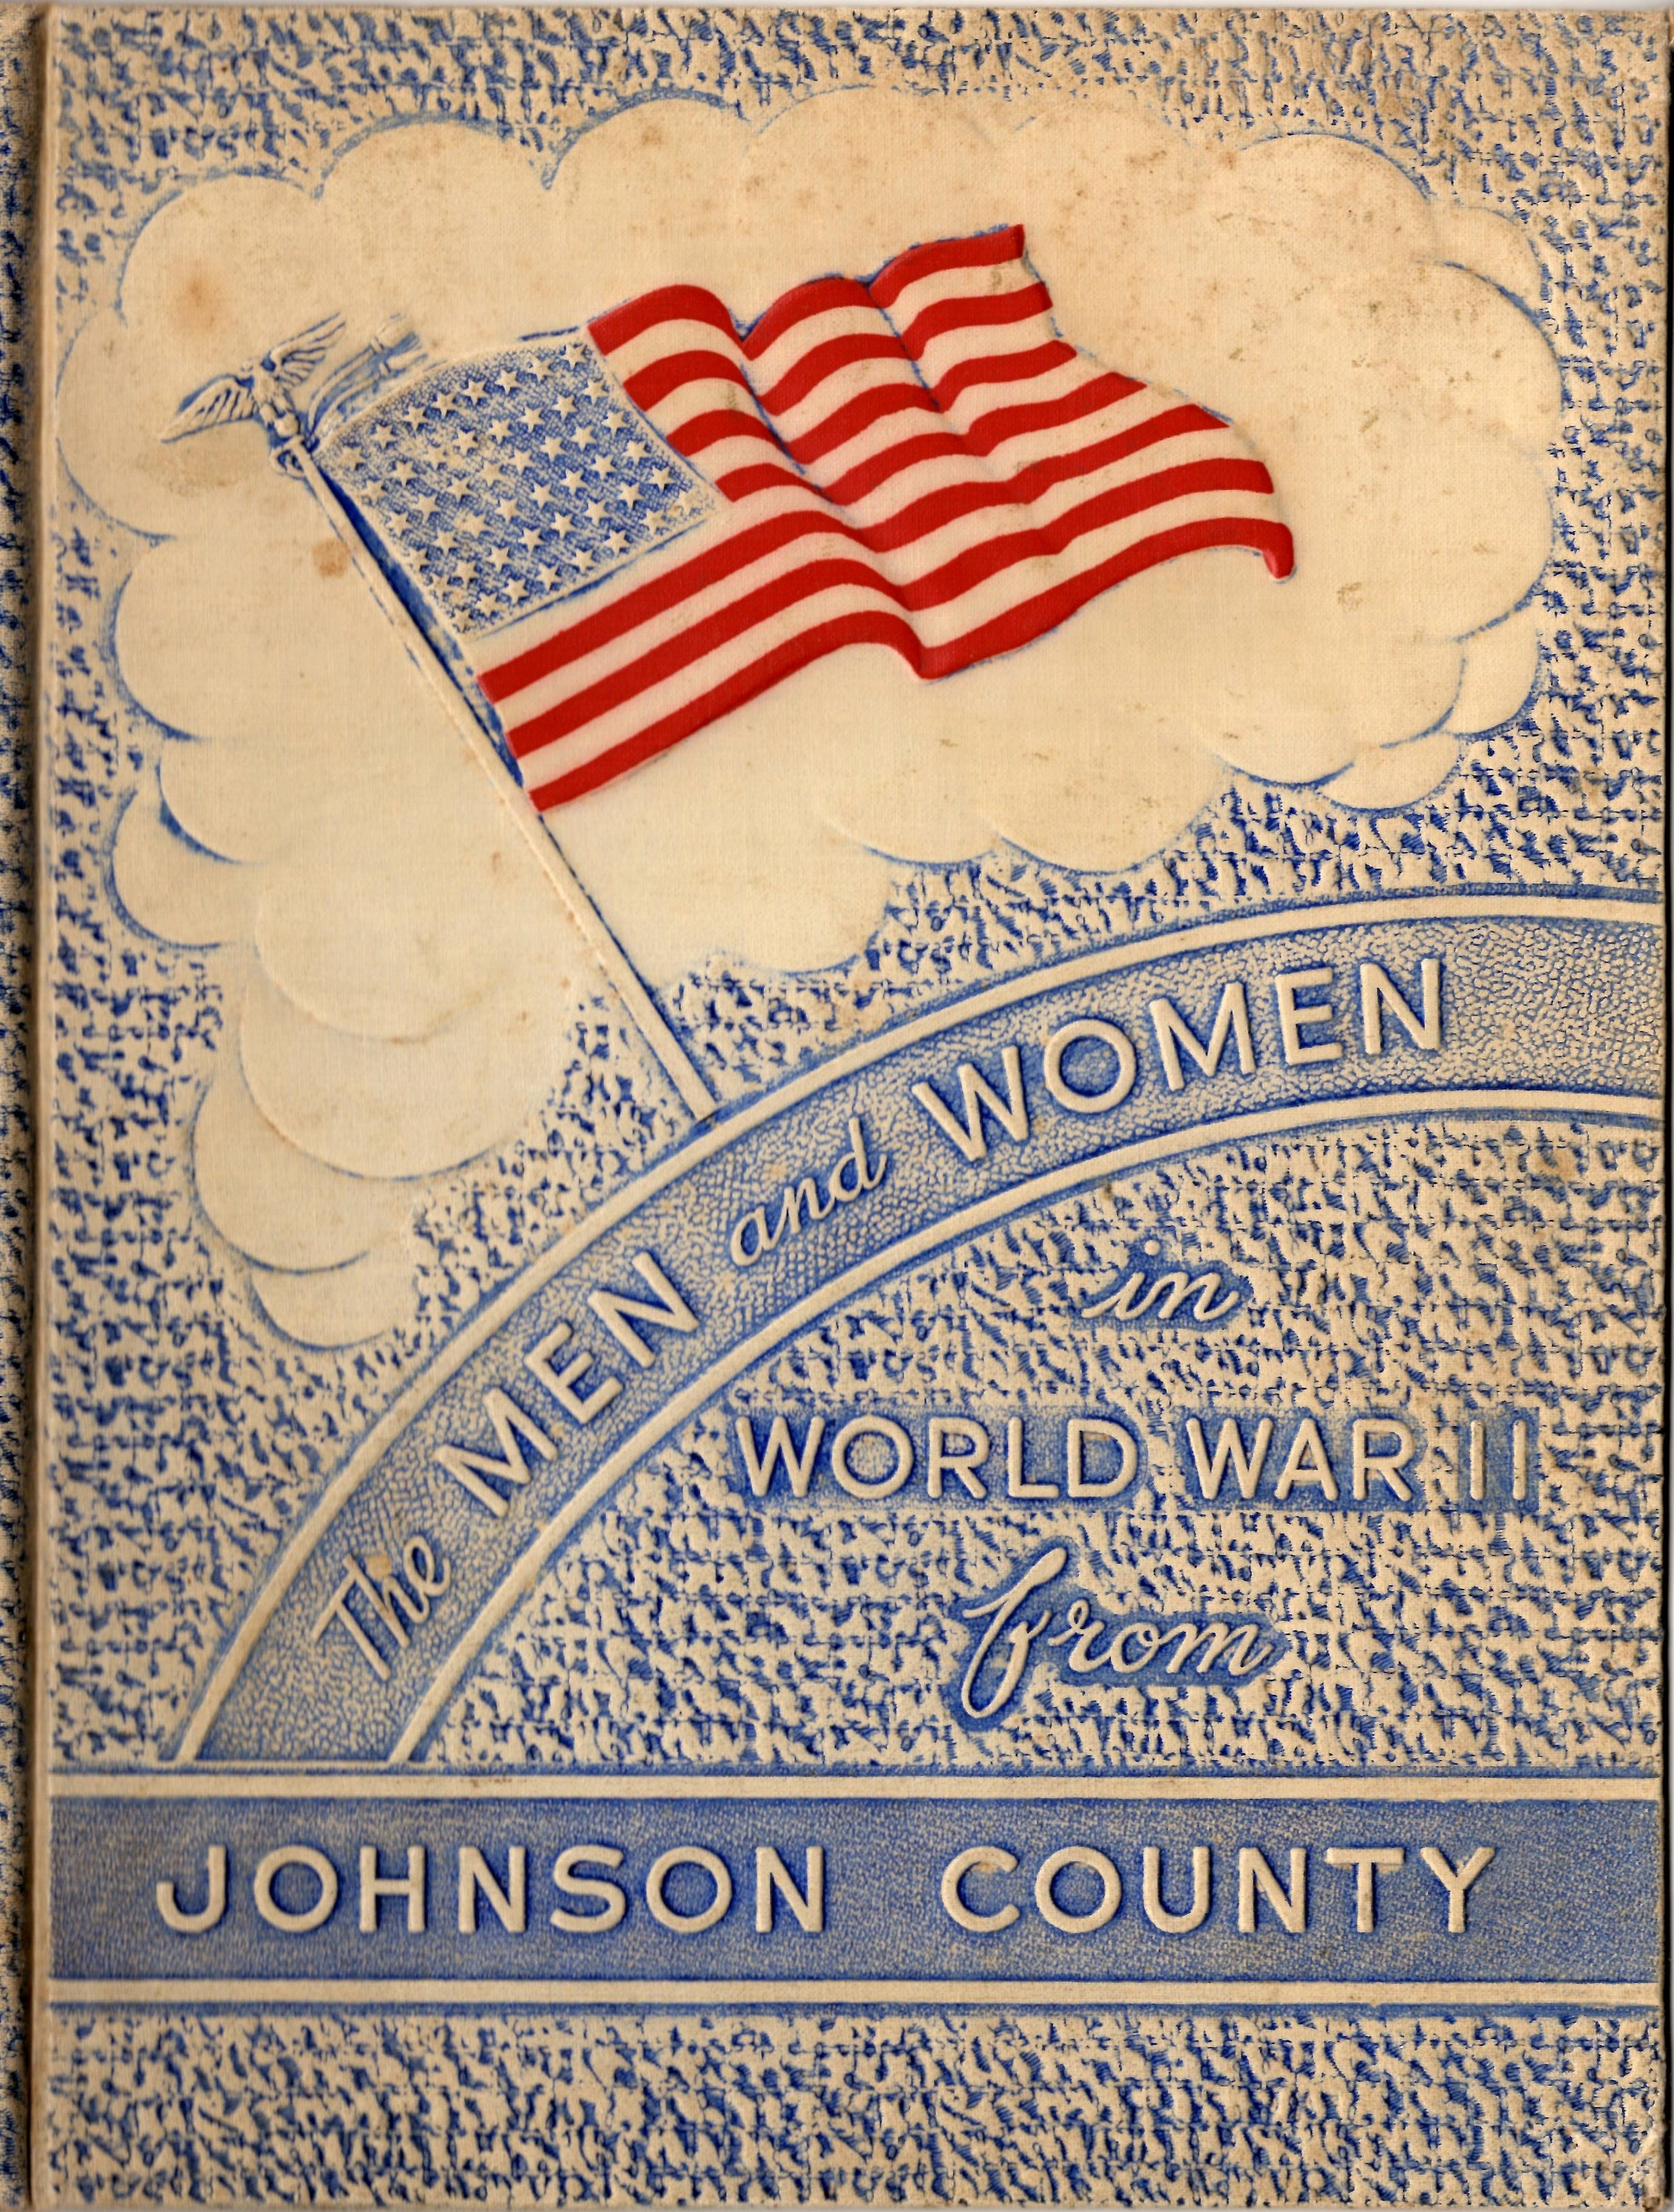 Men and women in the Armed Forces fromJohnson County Texas WW2 WWII World War Two 2 II 11